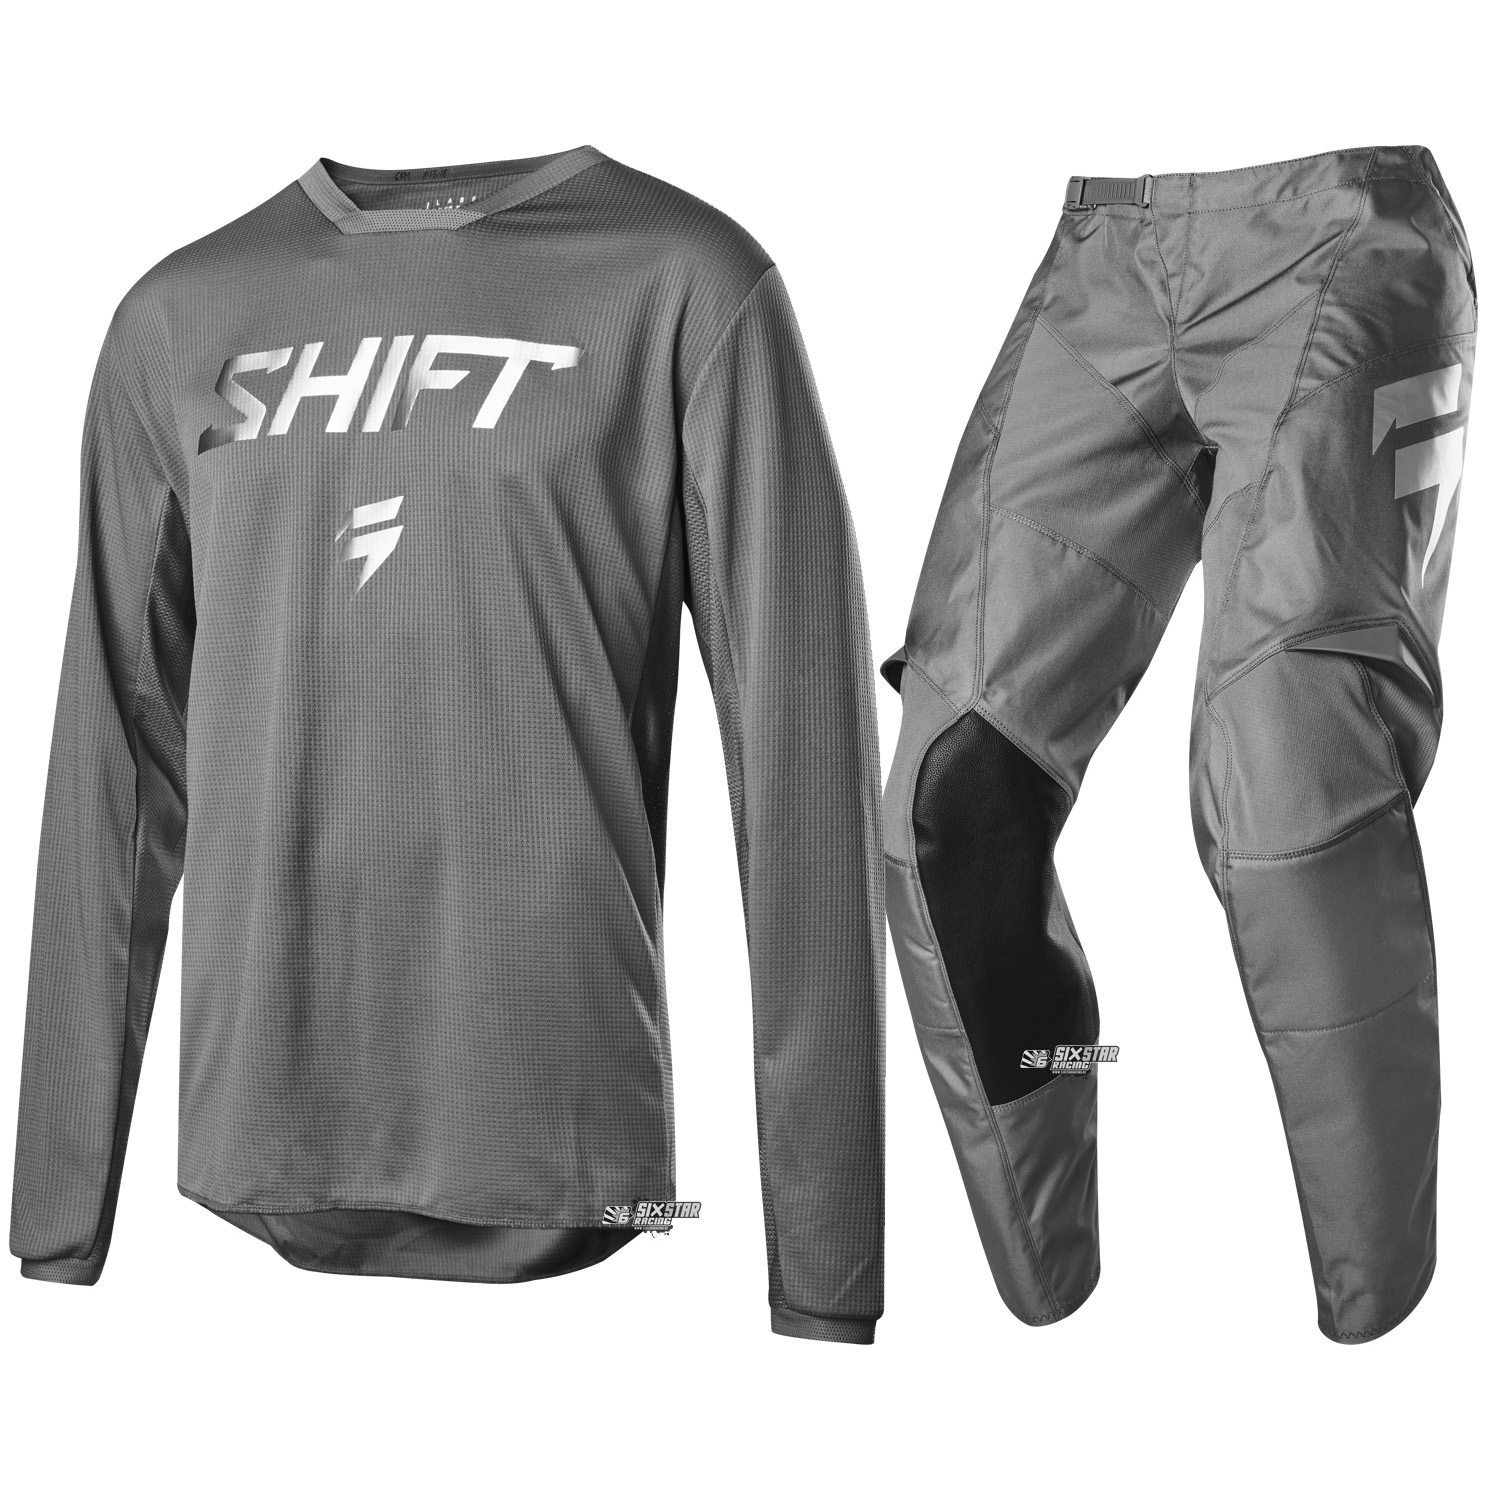 2019 Shift MX White Label Ghost Limited Edition Grey Gear Kit Combo Equipement Tenue Motocross Outfit Crosskleding